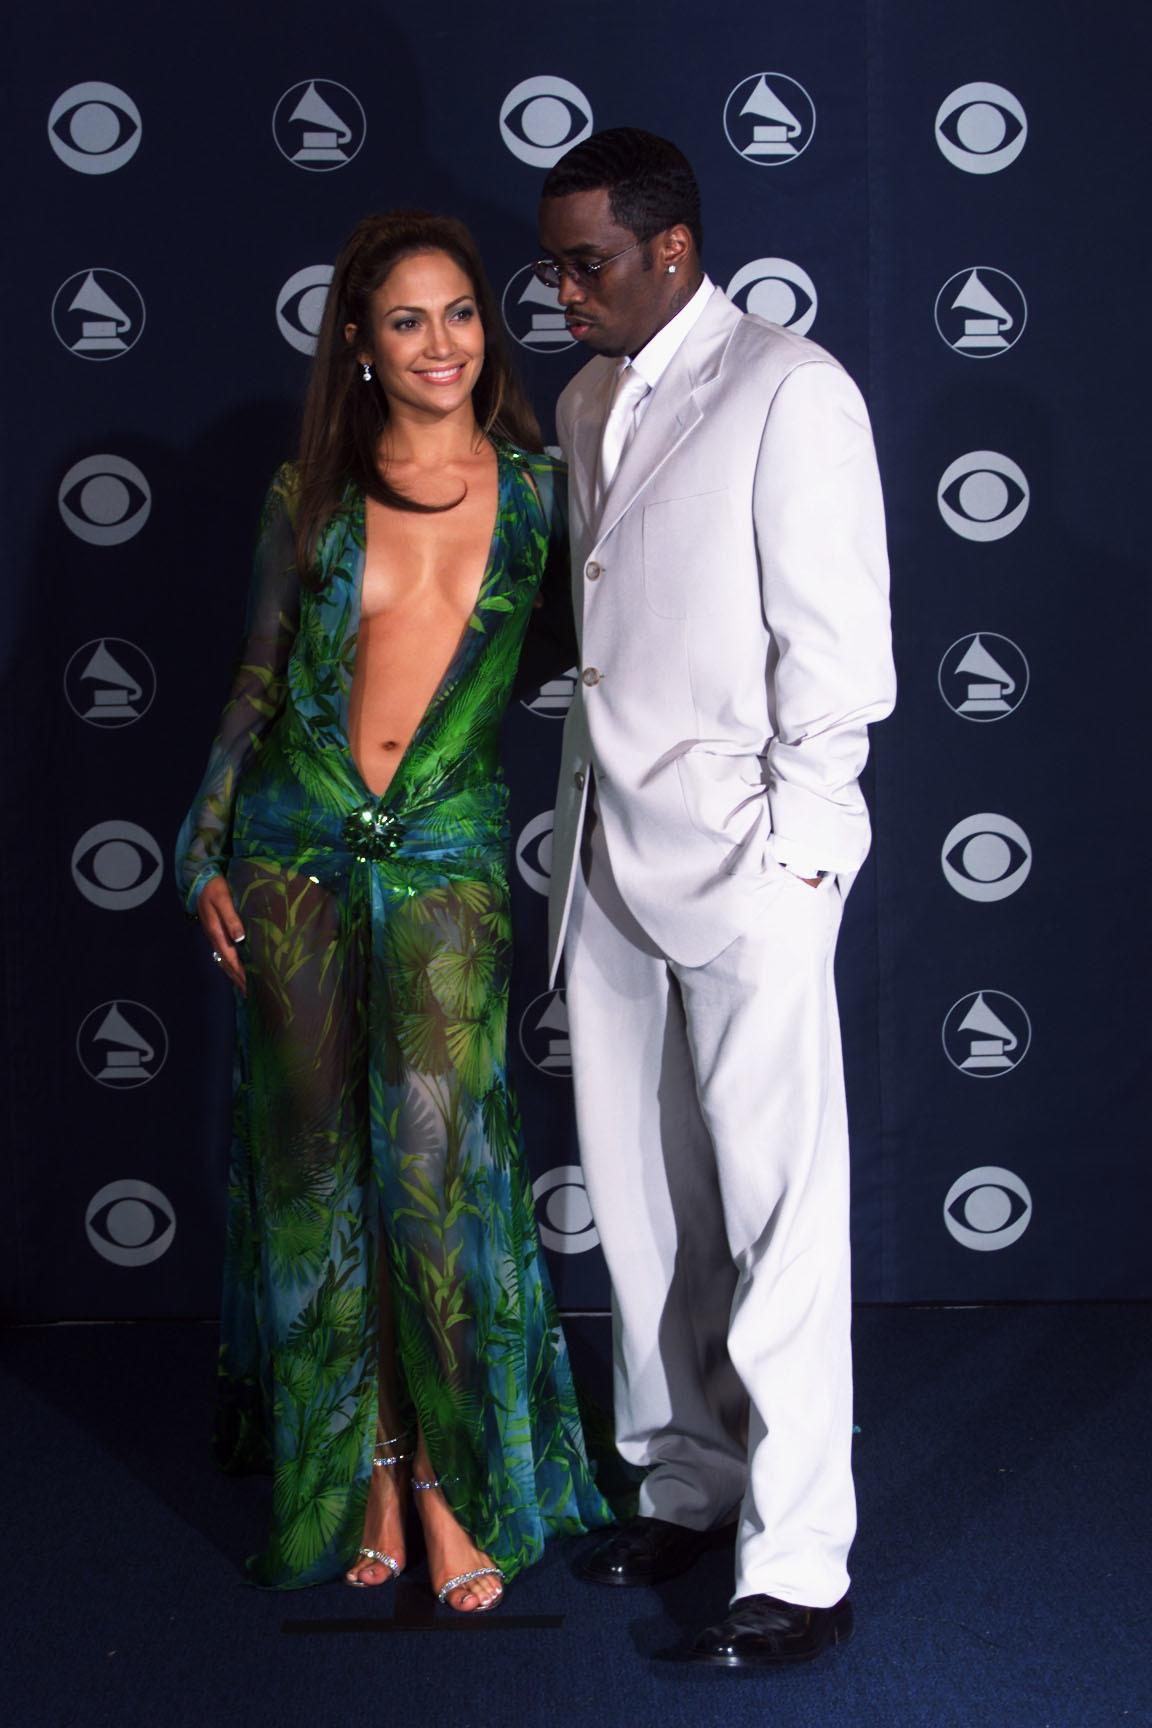 Jennifer Lopez in Versace and Puffy Daddy at the 42nd Grammy Awards held in Los Angeles, CA on Febuary 23, 2000  Photo by Scott Gries/ImageDirect